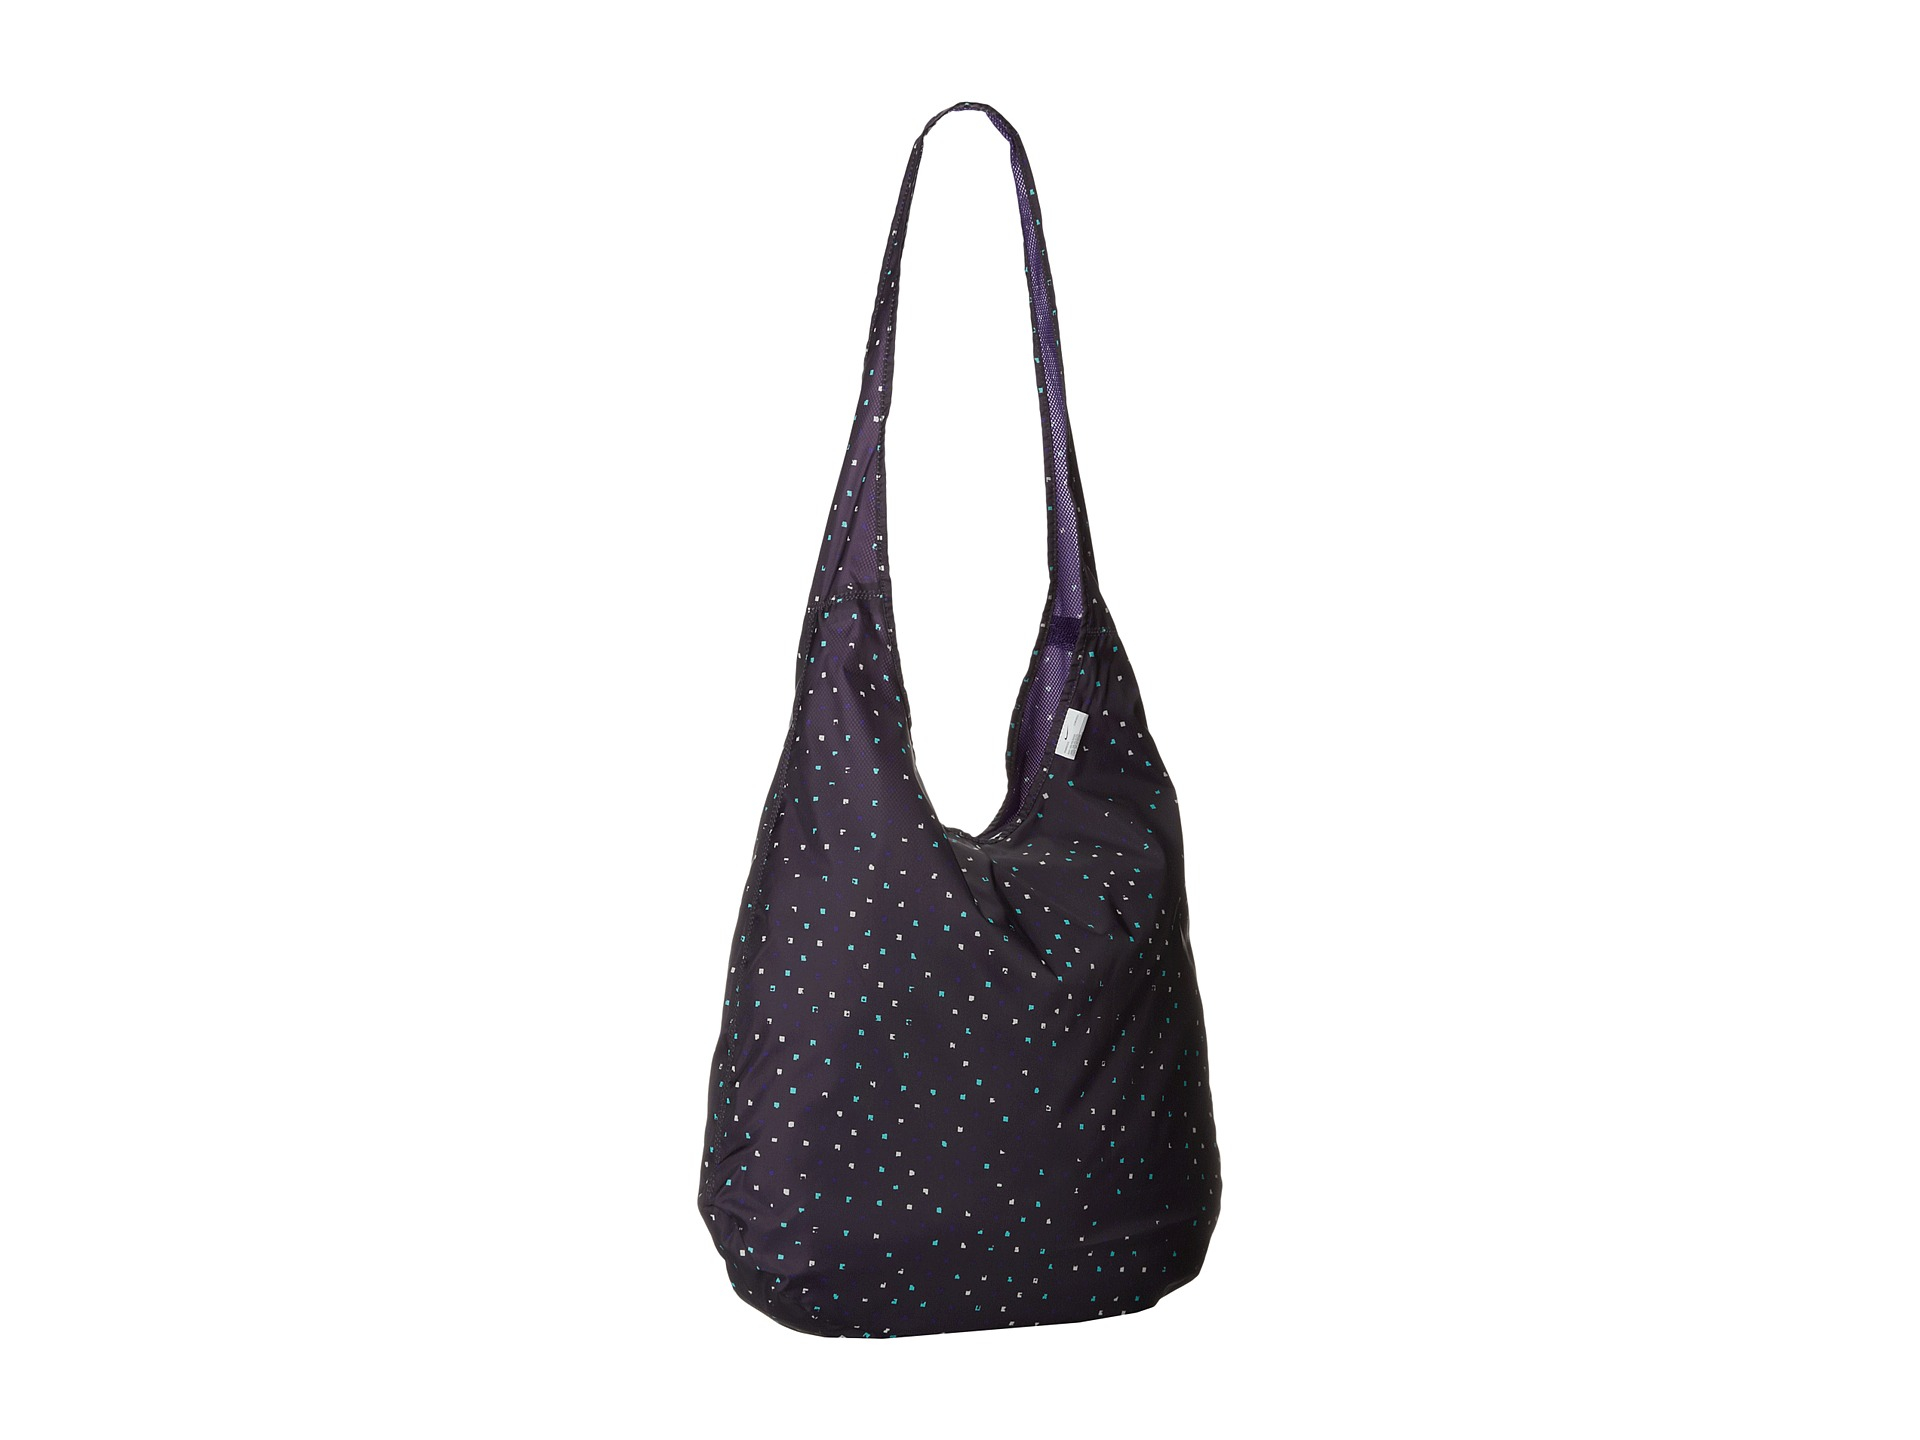 76bc91a9b4 Gallery. Previously sold at  Zappos · Women s Reversible Bags ...